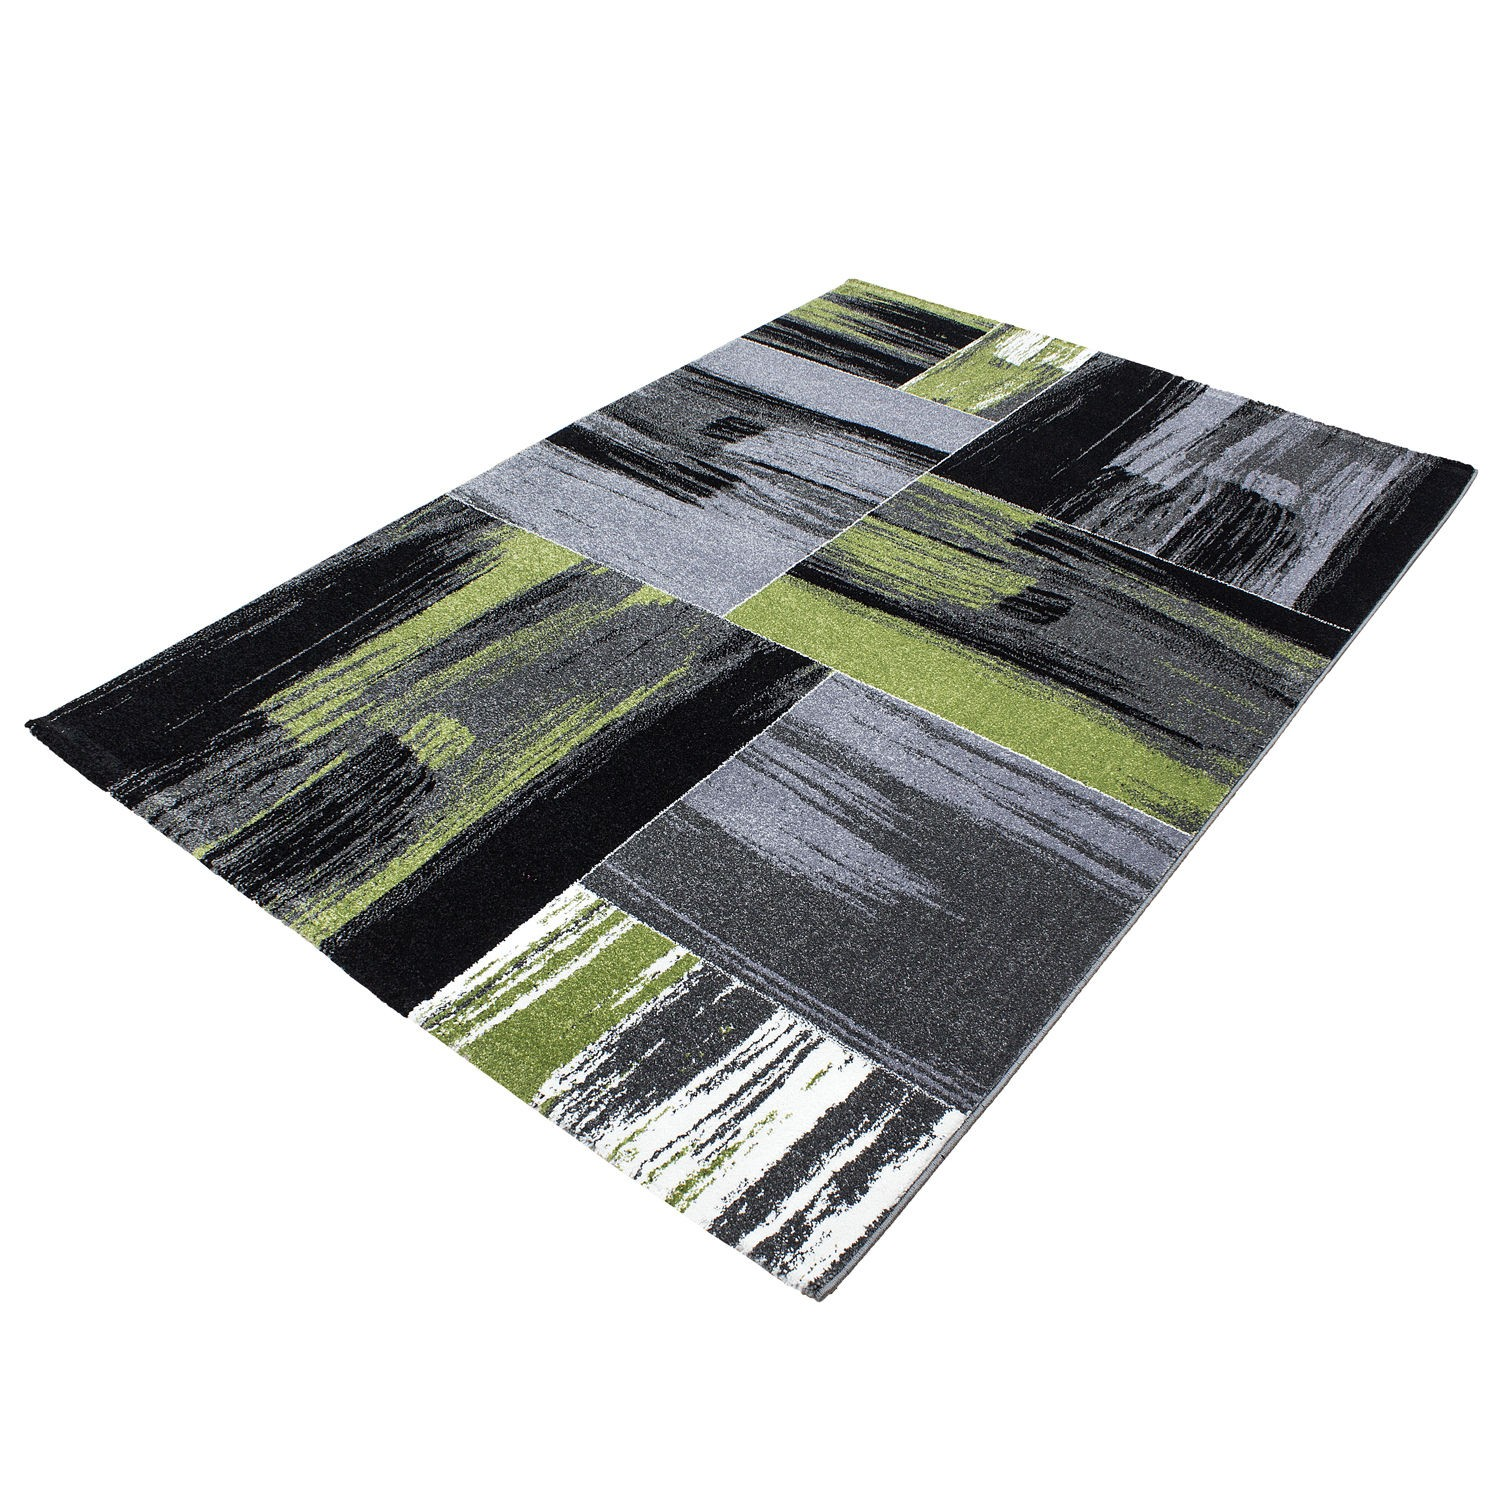 tapis vert pas cher 28 images tapis enfant pas cher meuble oreiller matelas memoire design. Black Bedroom Furniture Sets. Home Design Ideas